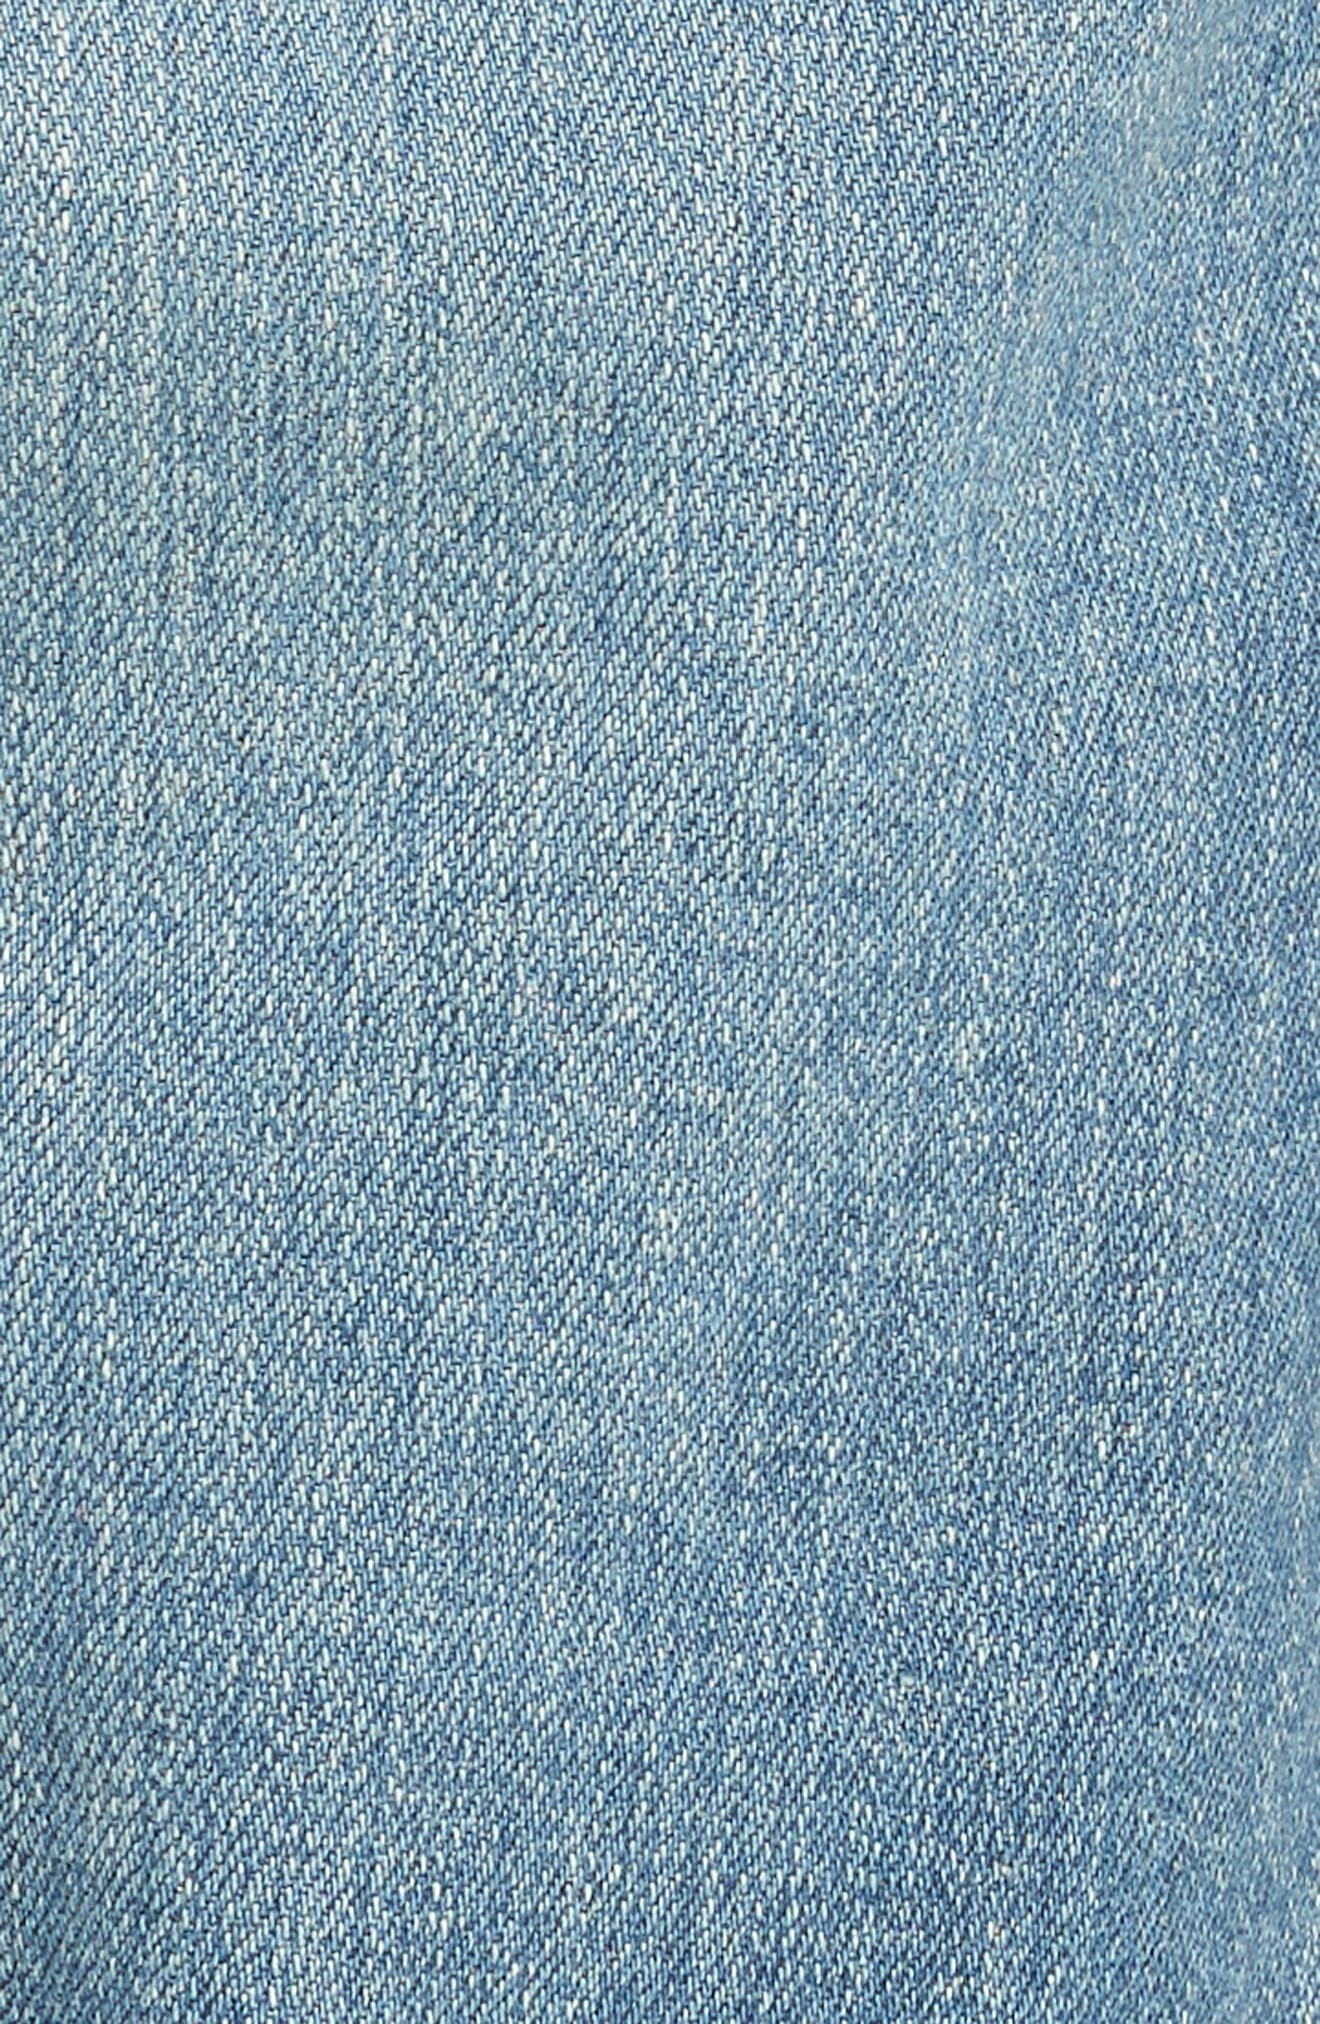 Dylan Skinny Fit Jeans,                             Alternate thumbnail 5, color,                             18 YEARS OCEANO